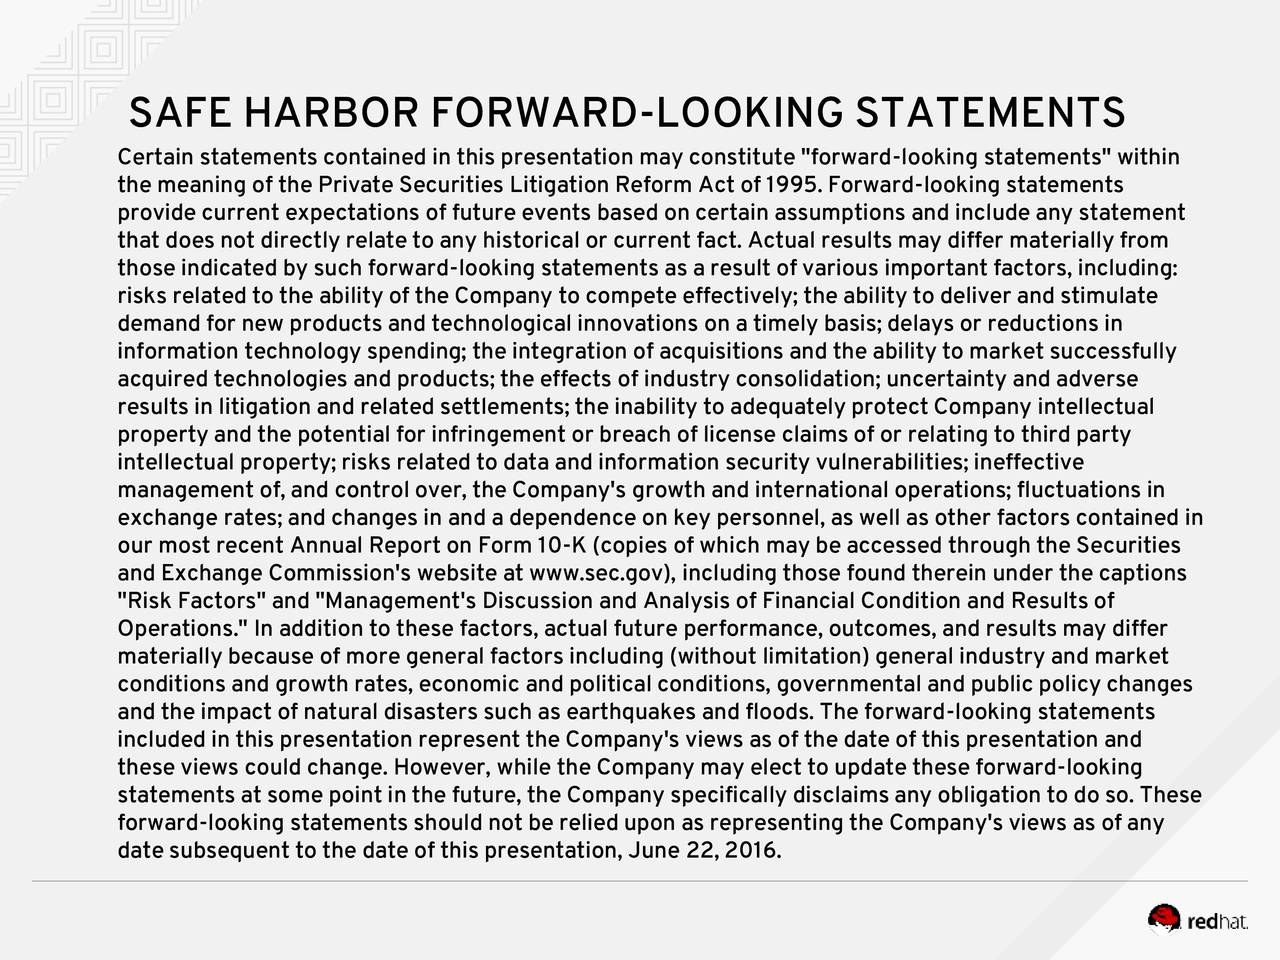 """Certain statements contained in this presentation may constitute """"forward-looking statements"""" within the meaning of the Private Securities Litigation Reform Act of 1995. Forward-looking statements provide current expectations of future events based on certain assumptions and include any statement that does not directly relate to any historical or current fact. Actual results may differ materially from those indicated by such forward-looking statements as a result of various important factors, including: risks related to the ability of the Company to compete effectively; the ability to deliver and stimulate demand for new products and technological innovations on a timely basis; delays or reductions in information technology spending; the integration of acquisitions and the ability to market successfully acquired technologies and products; the effects of industry consolidation; uncertainty and adverse results in litigation and related settlements; the inability to adequately protect Company intellectual property and the potential for infringement or breach of license claims of or relating to third party intellectual property; risks related to data and information security vulnerabilities; ineffective management of, and control over, the Company's growth and international operations; fluctuations in exchange rates; and changes in and a dependence on key personnel, as well as other factors contained in our most recent Annual Report on Form 10-K (copies of which may be accessed through the Securities and Exchange Commission's website at www.sec.gov), including those found therein under the captions """"Risk Factors"""" and """"Management's Discussion and Analysis of Financial Condition and Results of Operations."""" In addition to these factors, actual future performance, outcomes, and results may differ materially because of more general factors including (without limitation) general industry and market conditions and growth rates, economic and political conditions, governmental a"""